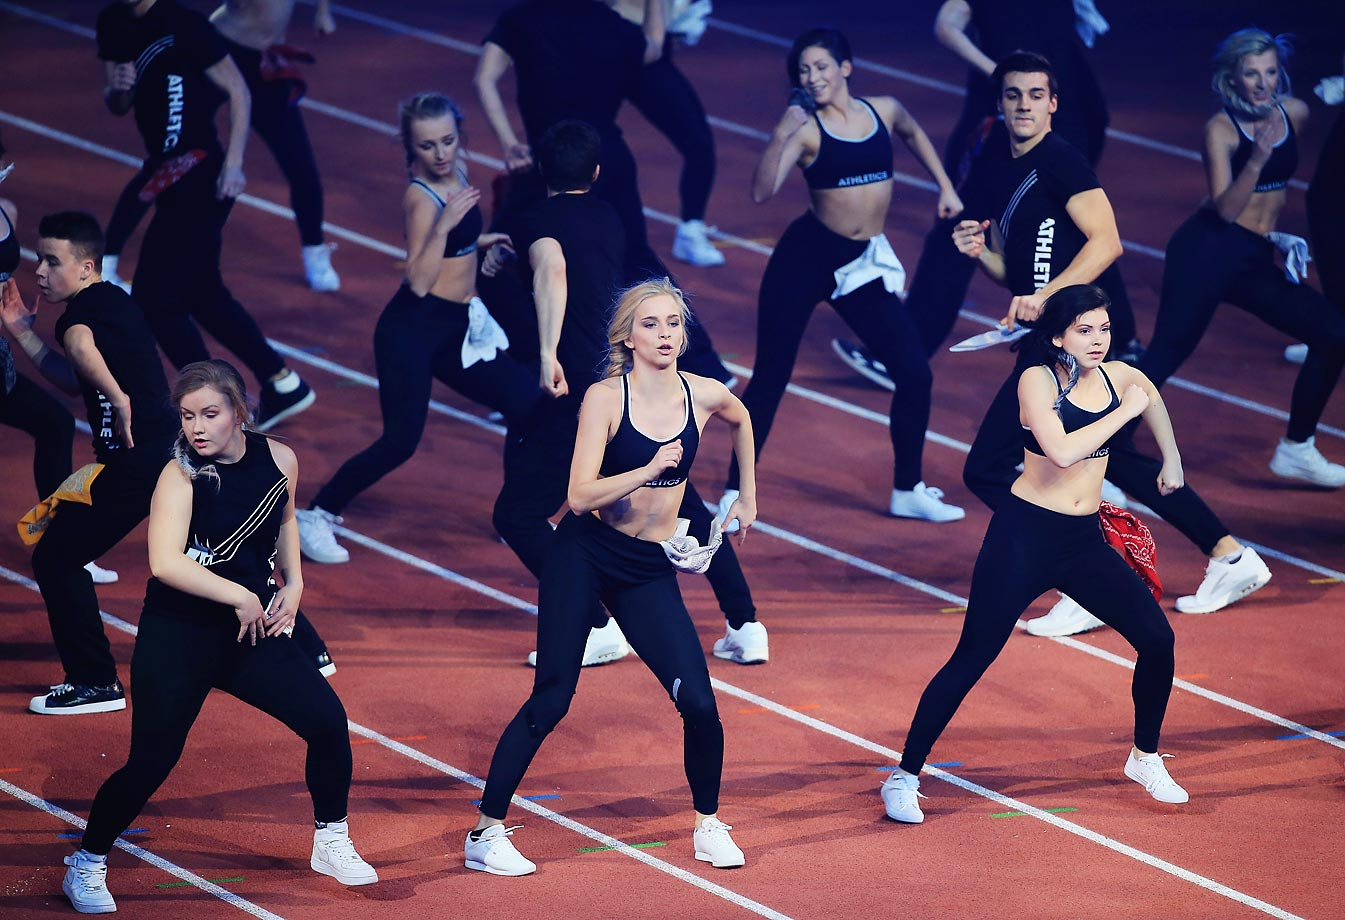 Performers during the Opening Ceremonies of the European Athletics Indoor Championships in Prague, Czech Republic.